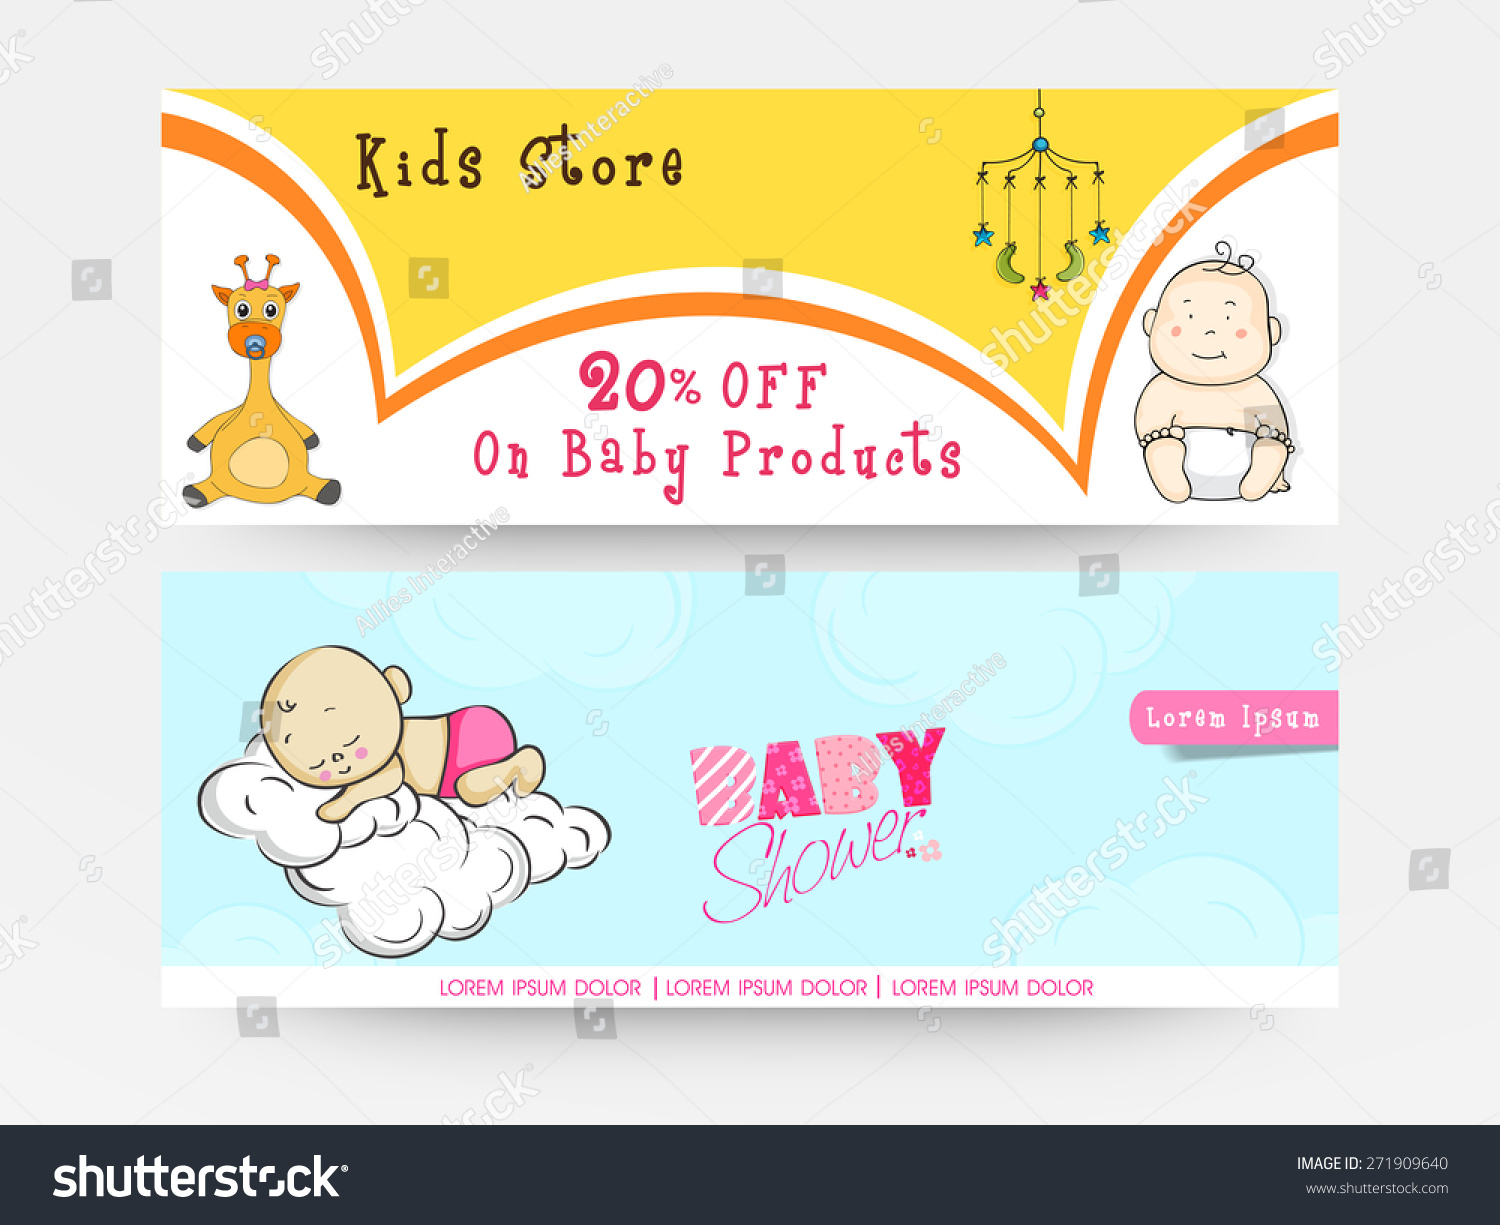 Charming Website Header Or Banner Set For Baby Shower Celebration With Baby Products  Sale Offer For Kids